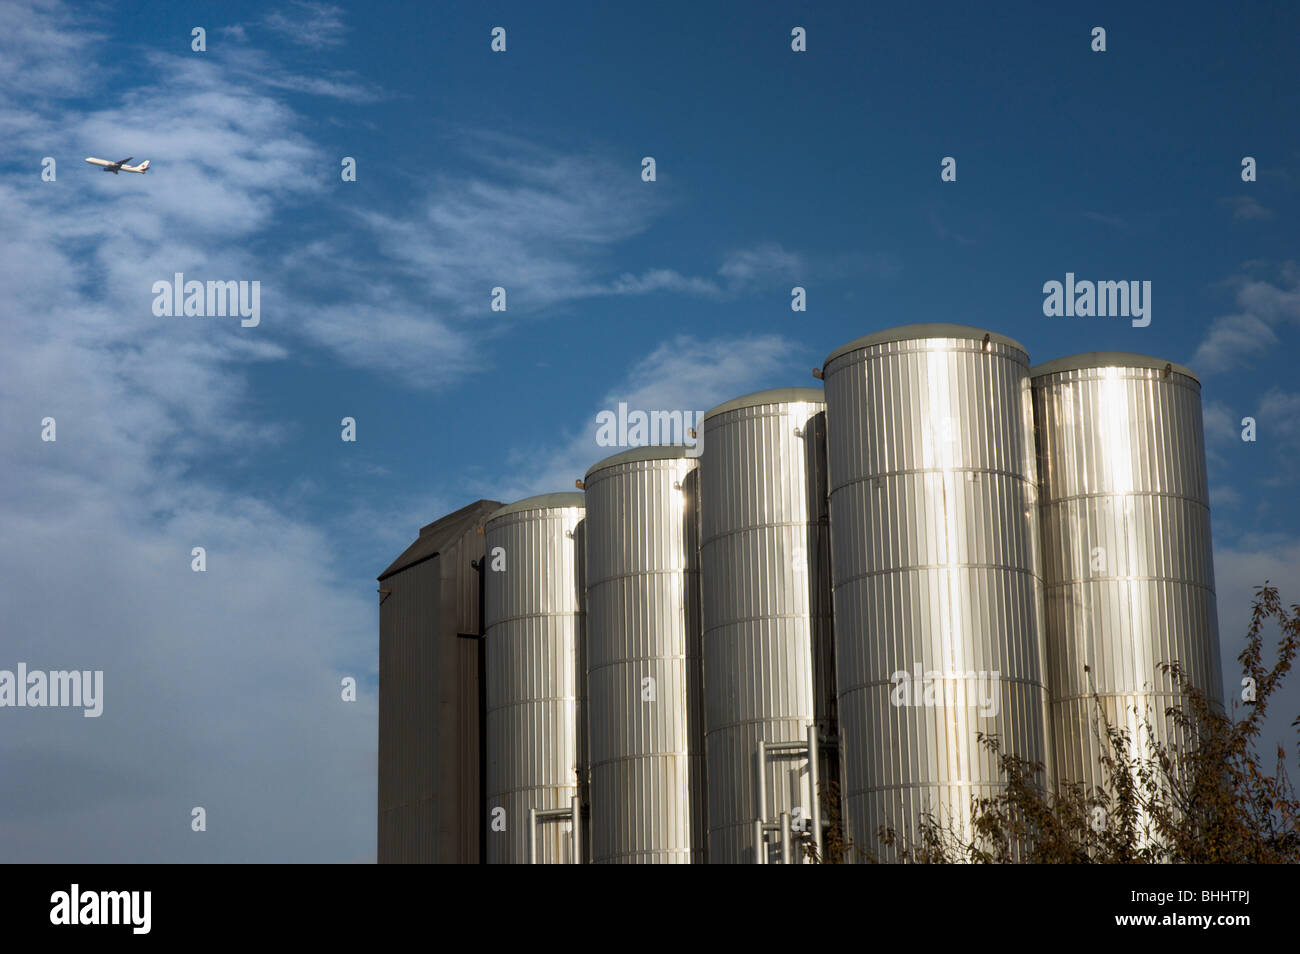 Brewery Grain Silos At Young S Ram Brewery Wandsworth